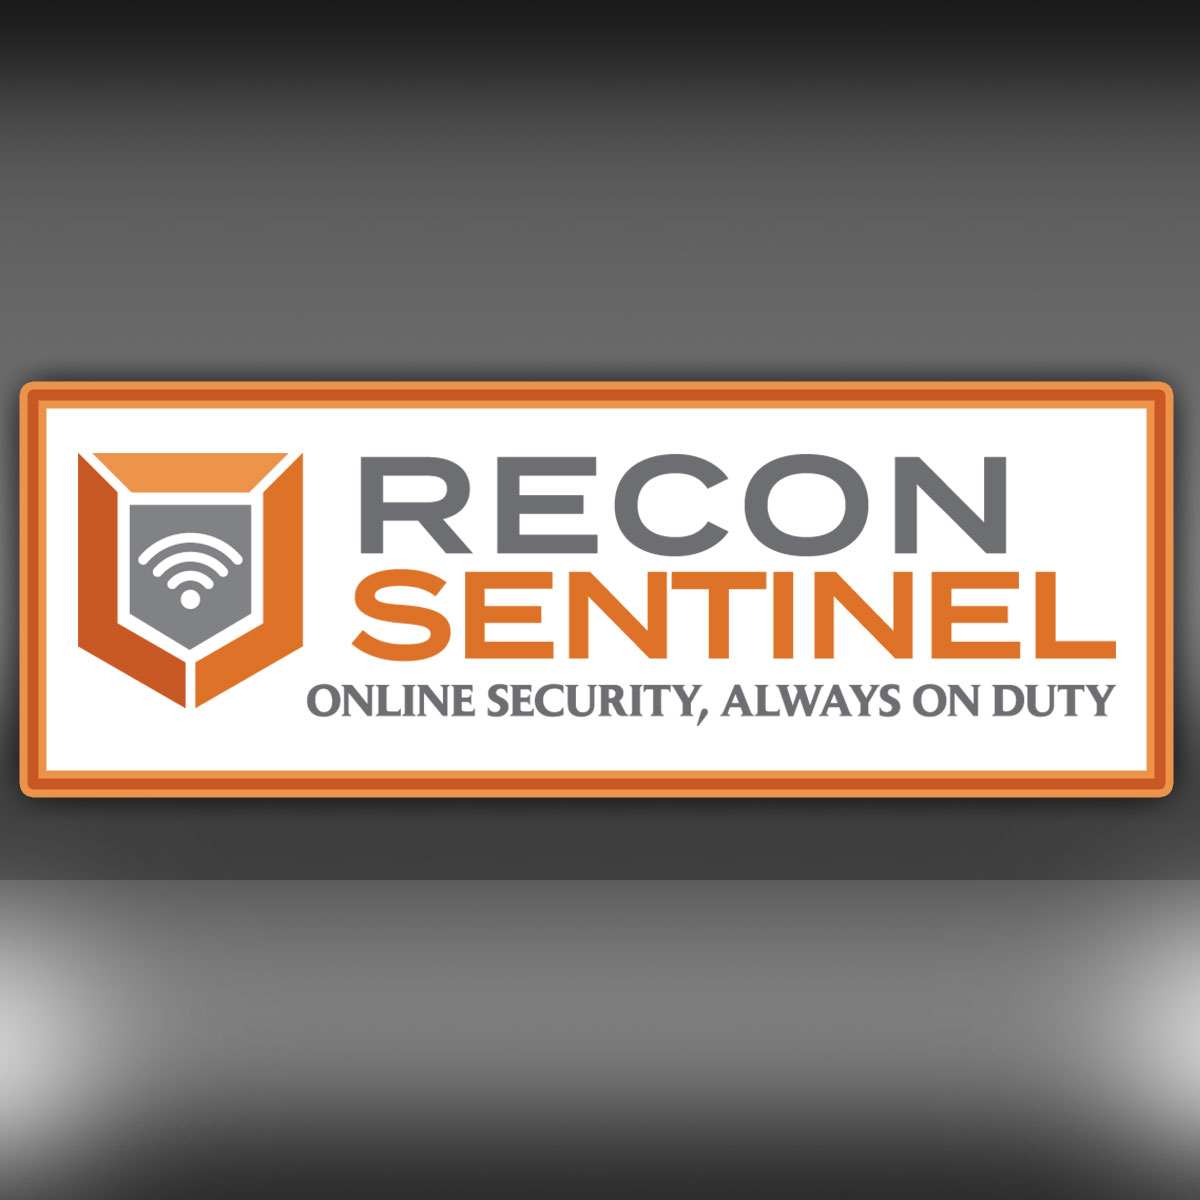 Recon Sentinel Logo and Tagline